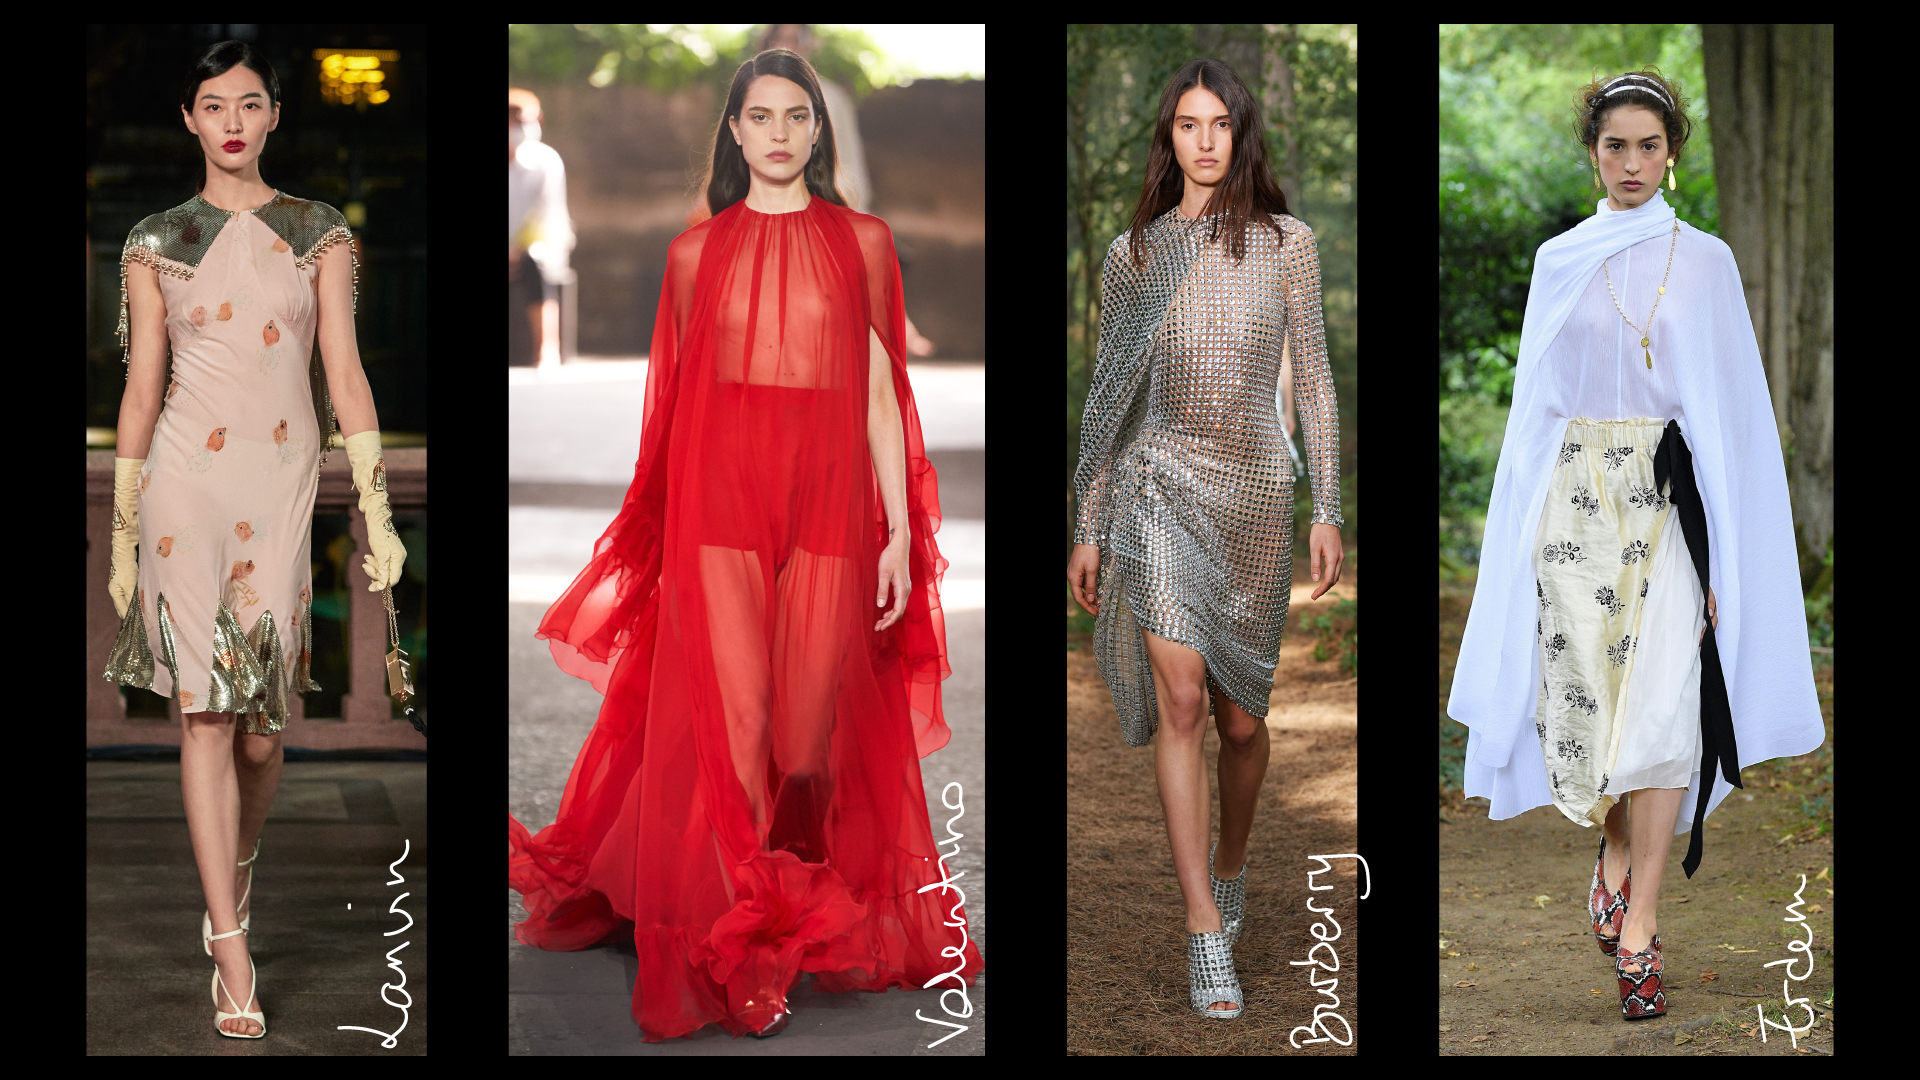 fairy tale fantasy trends 2021 spring summer justine leconte